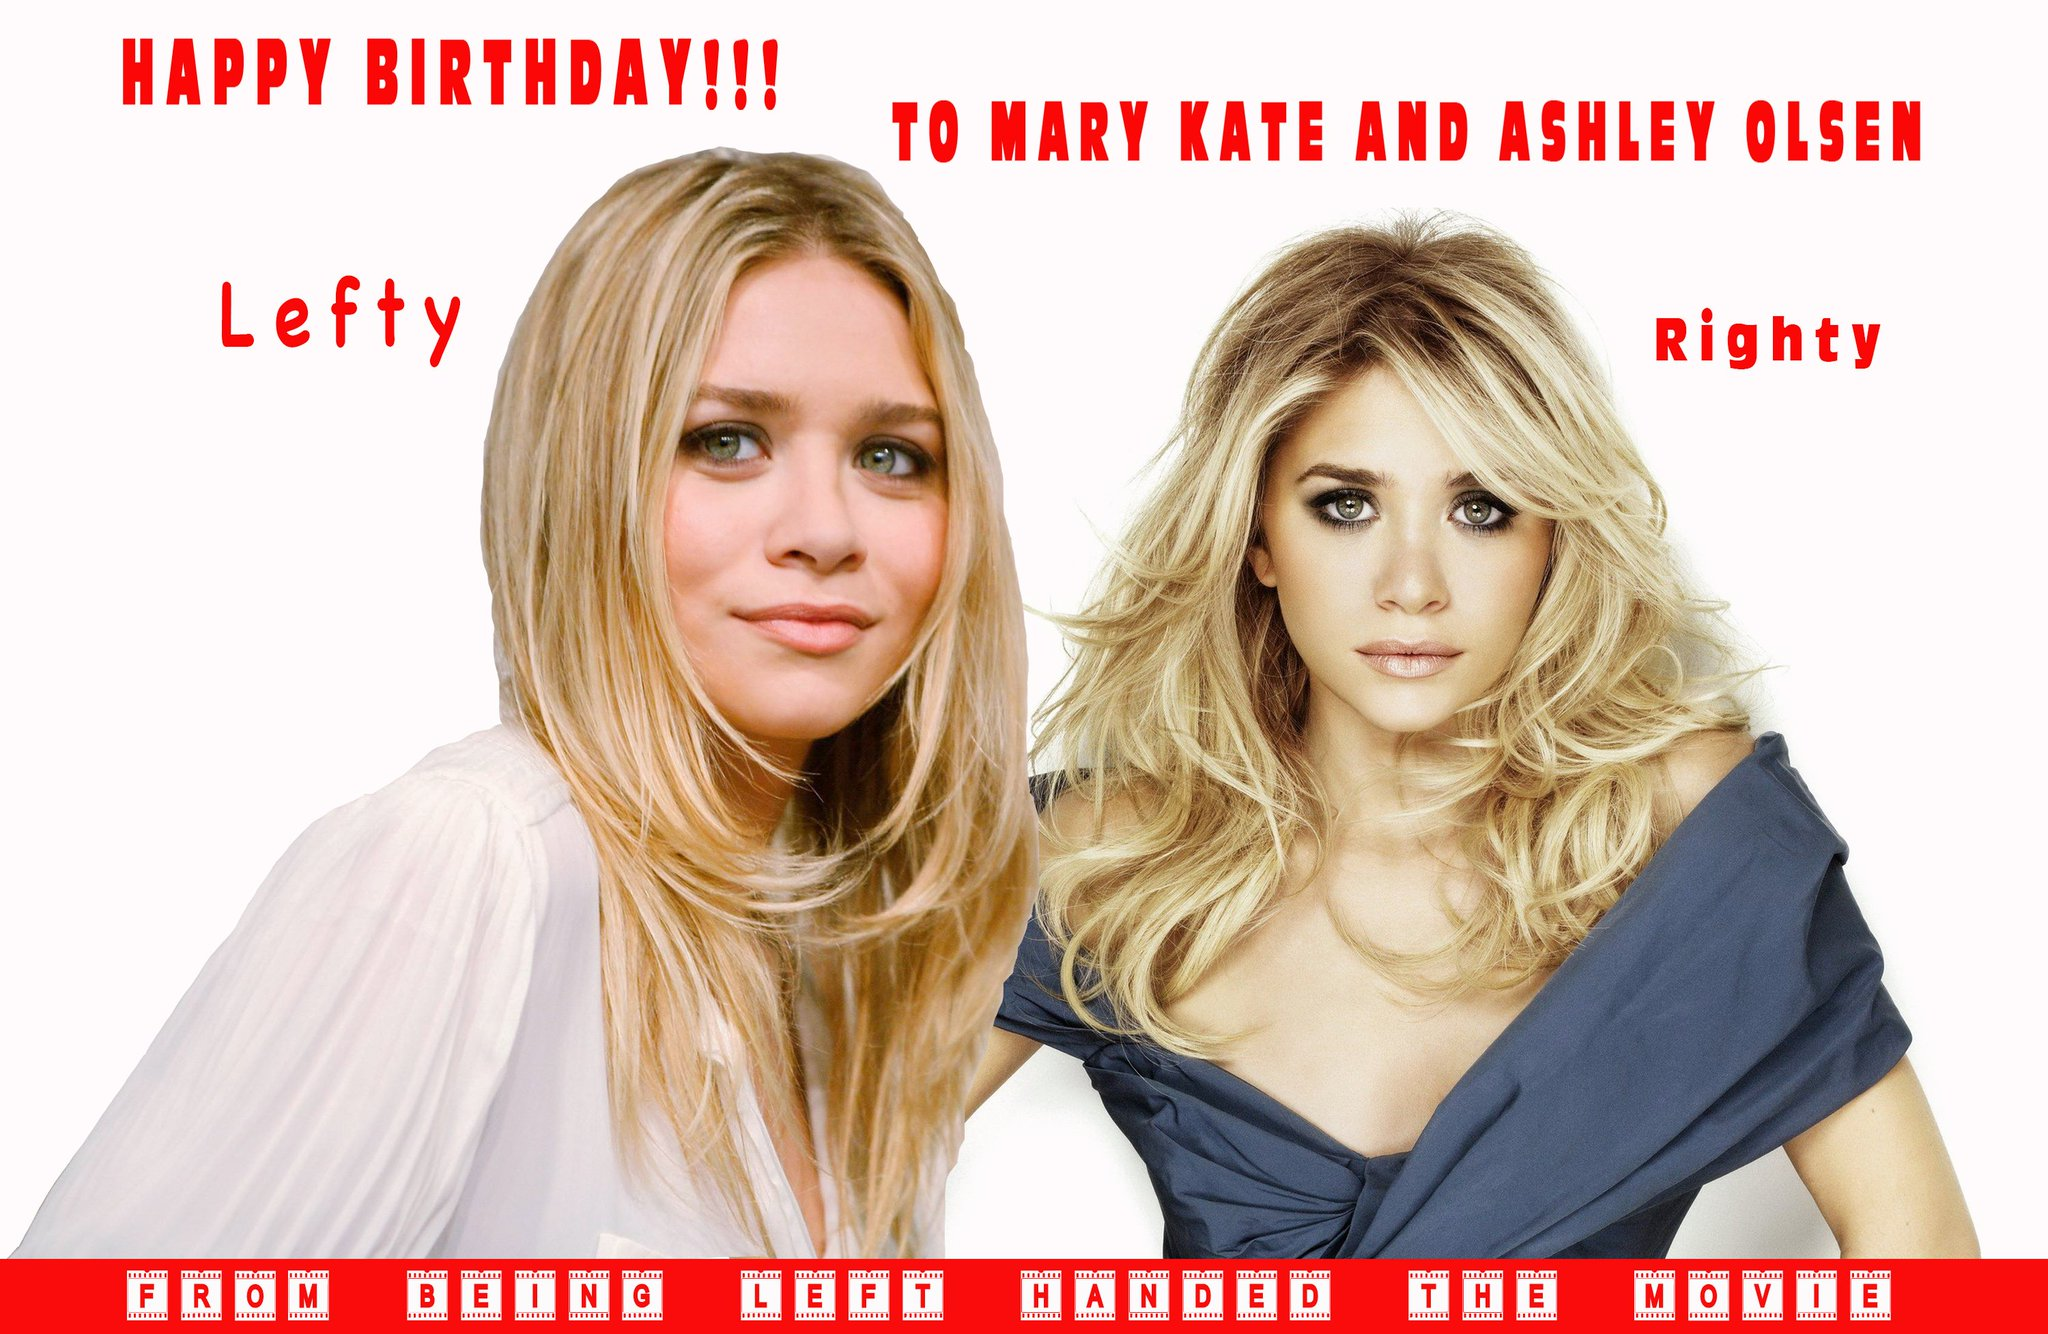 Happy Birthday and Ashley Olsen from